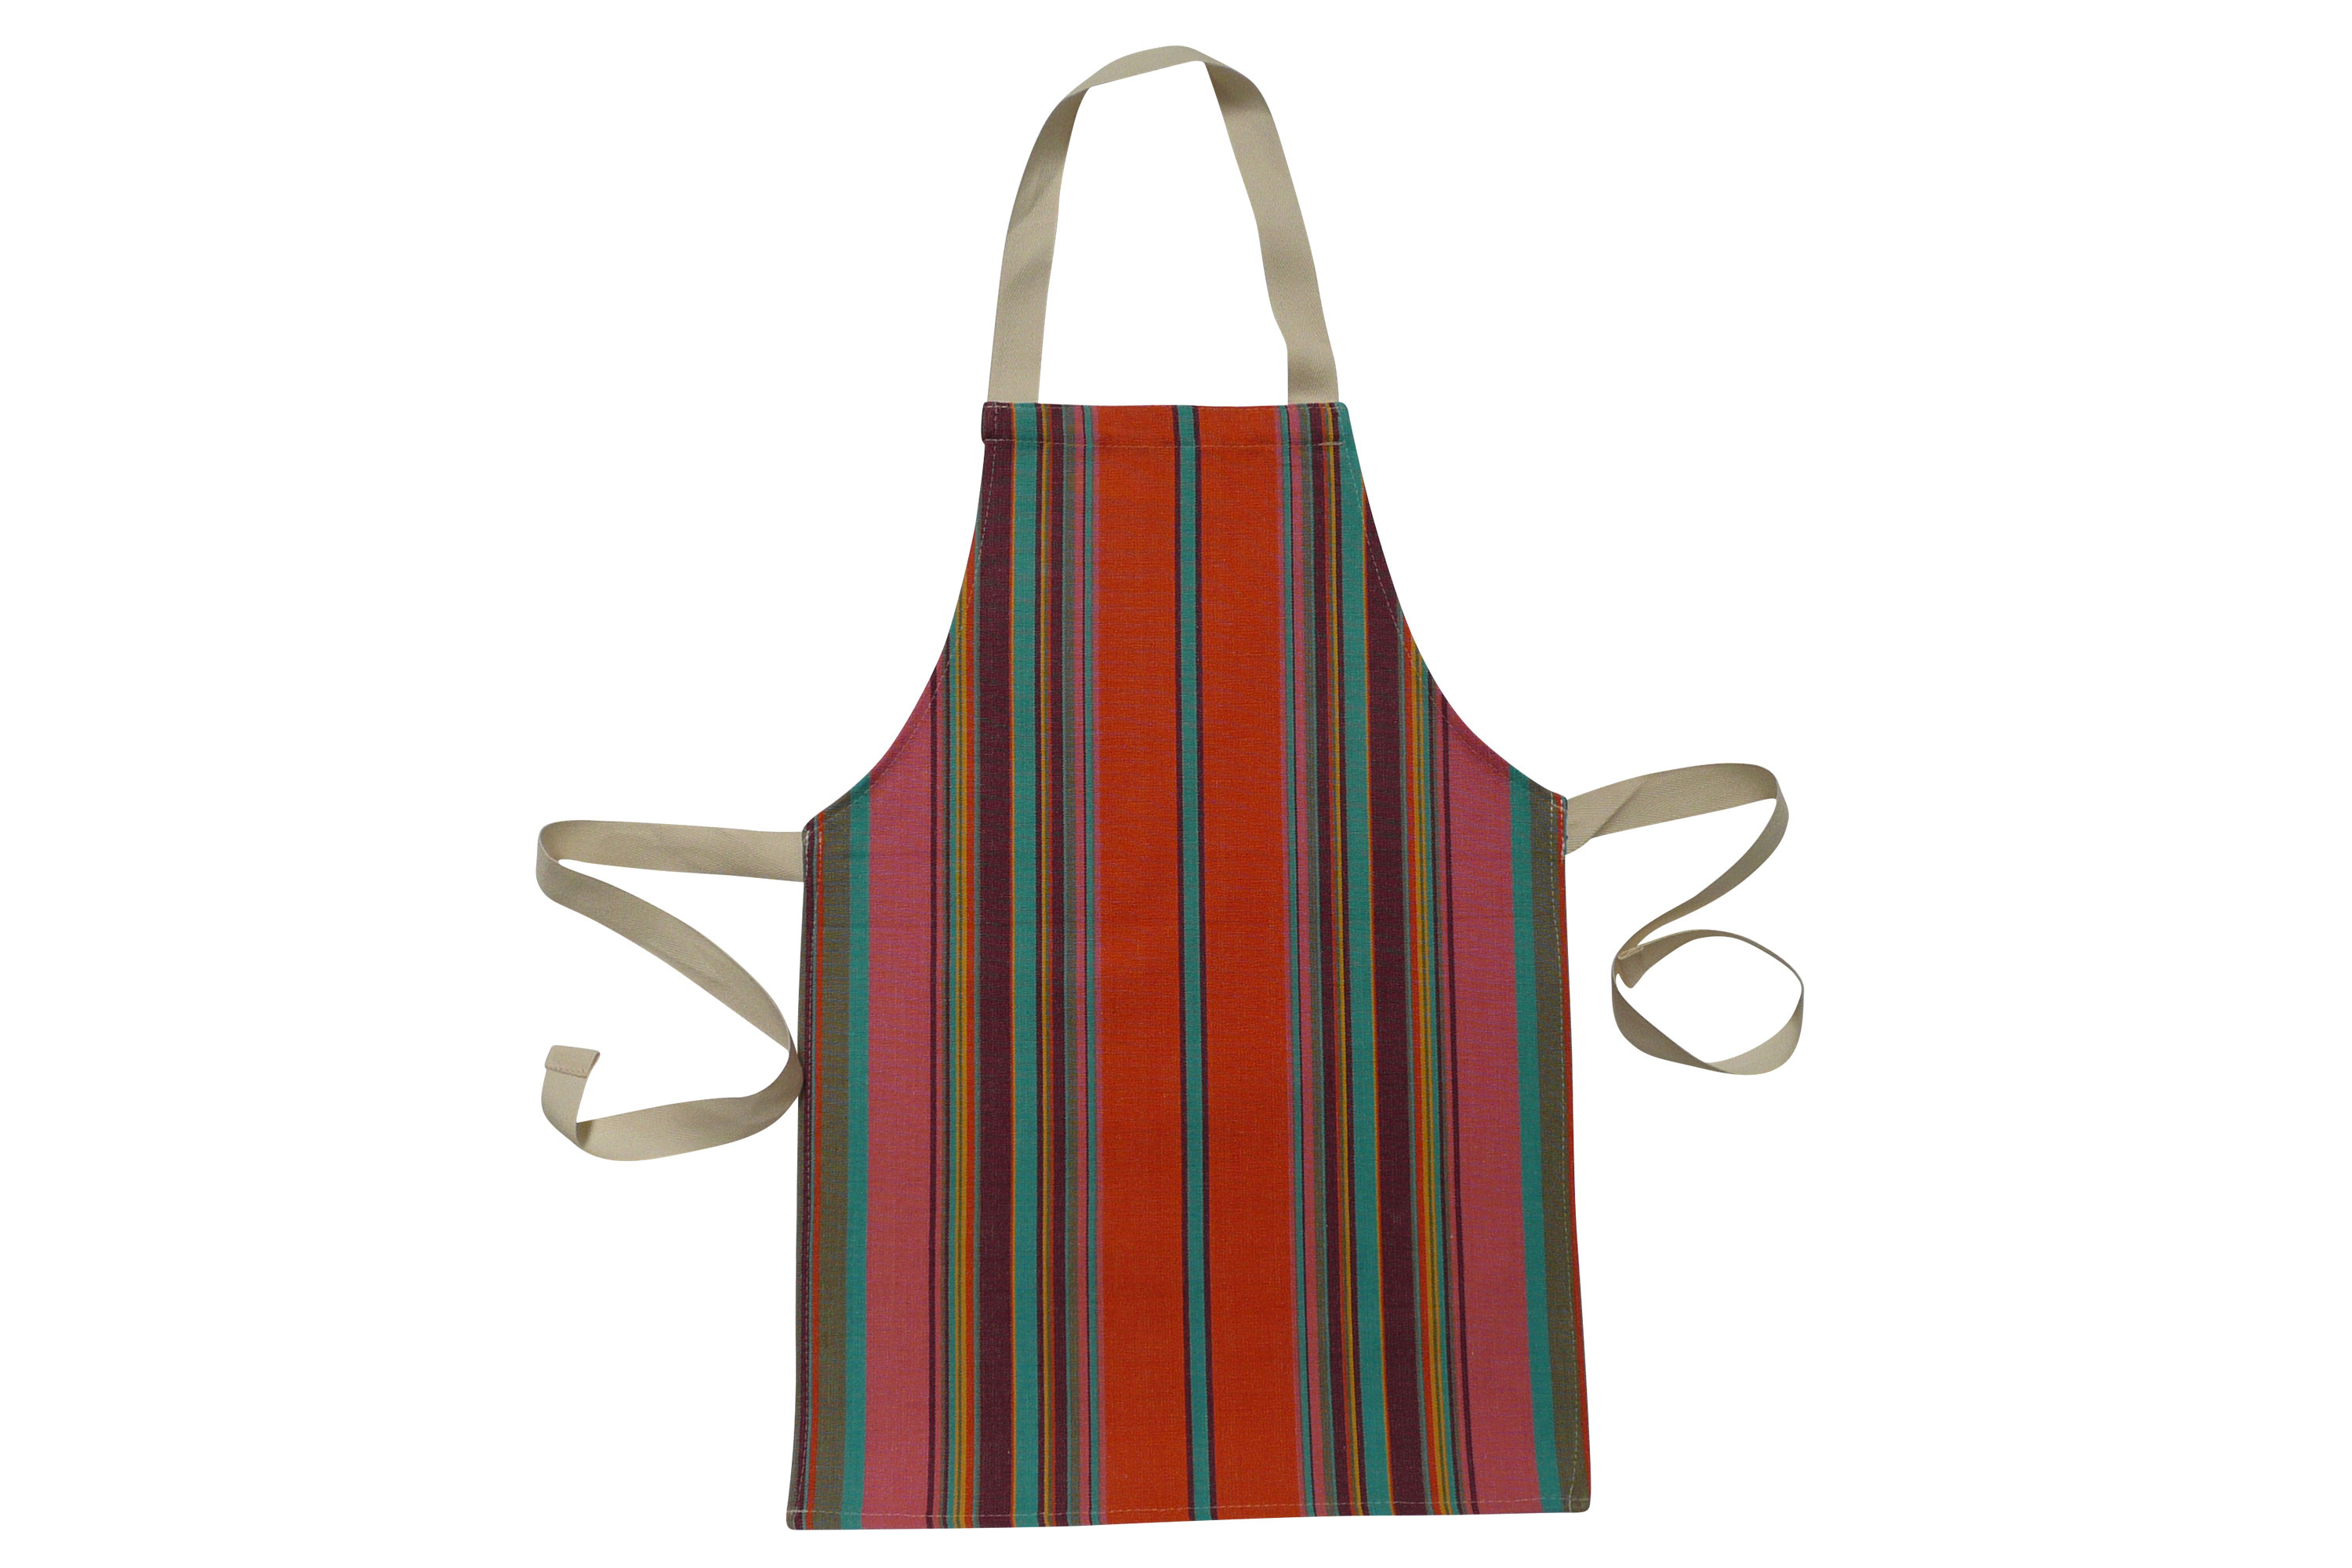 Toddlers Aprons - Striped Aprons For Small Childrencoral, bright green, terracotta